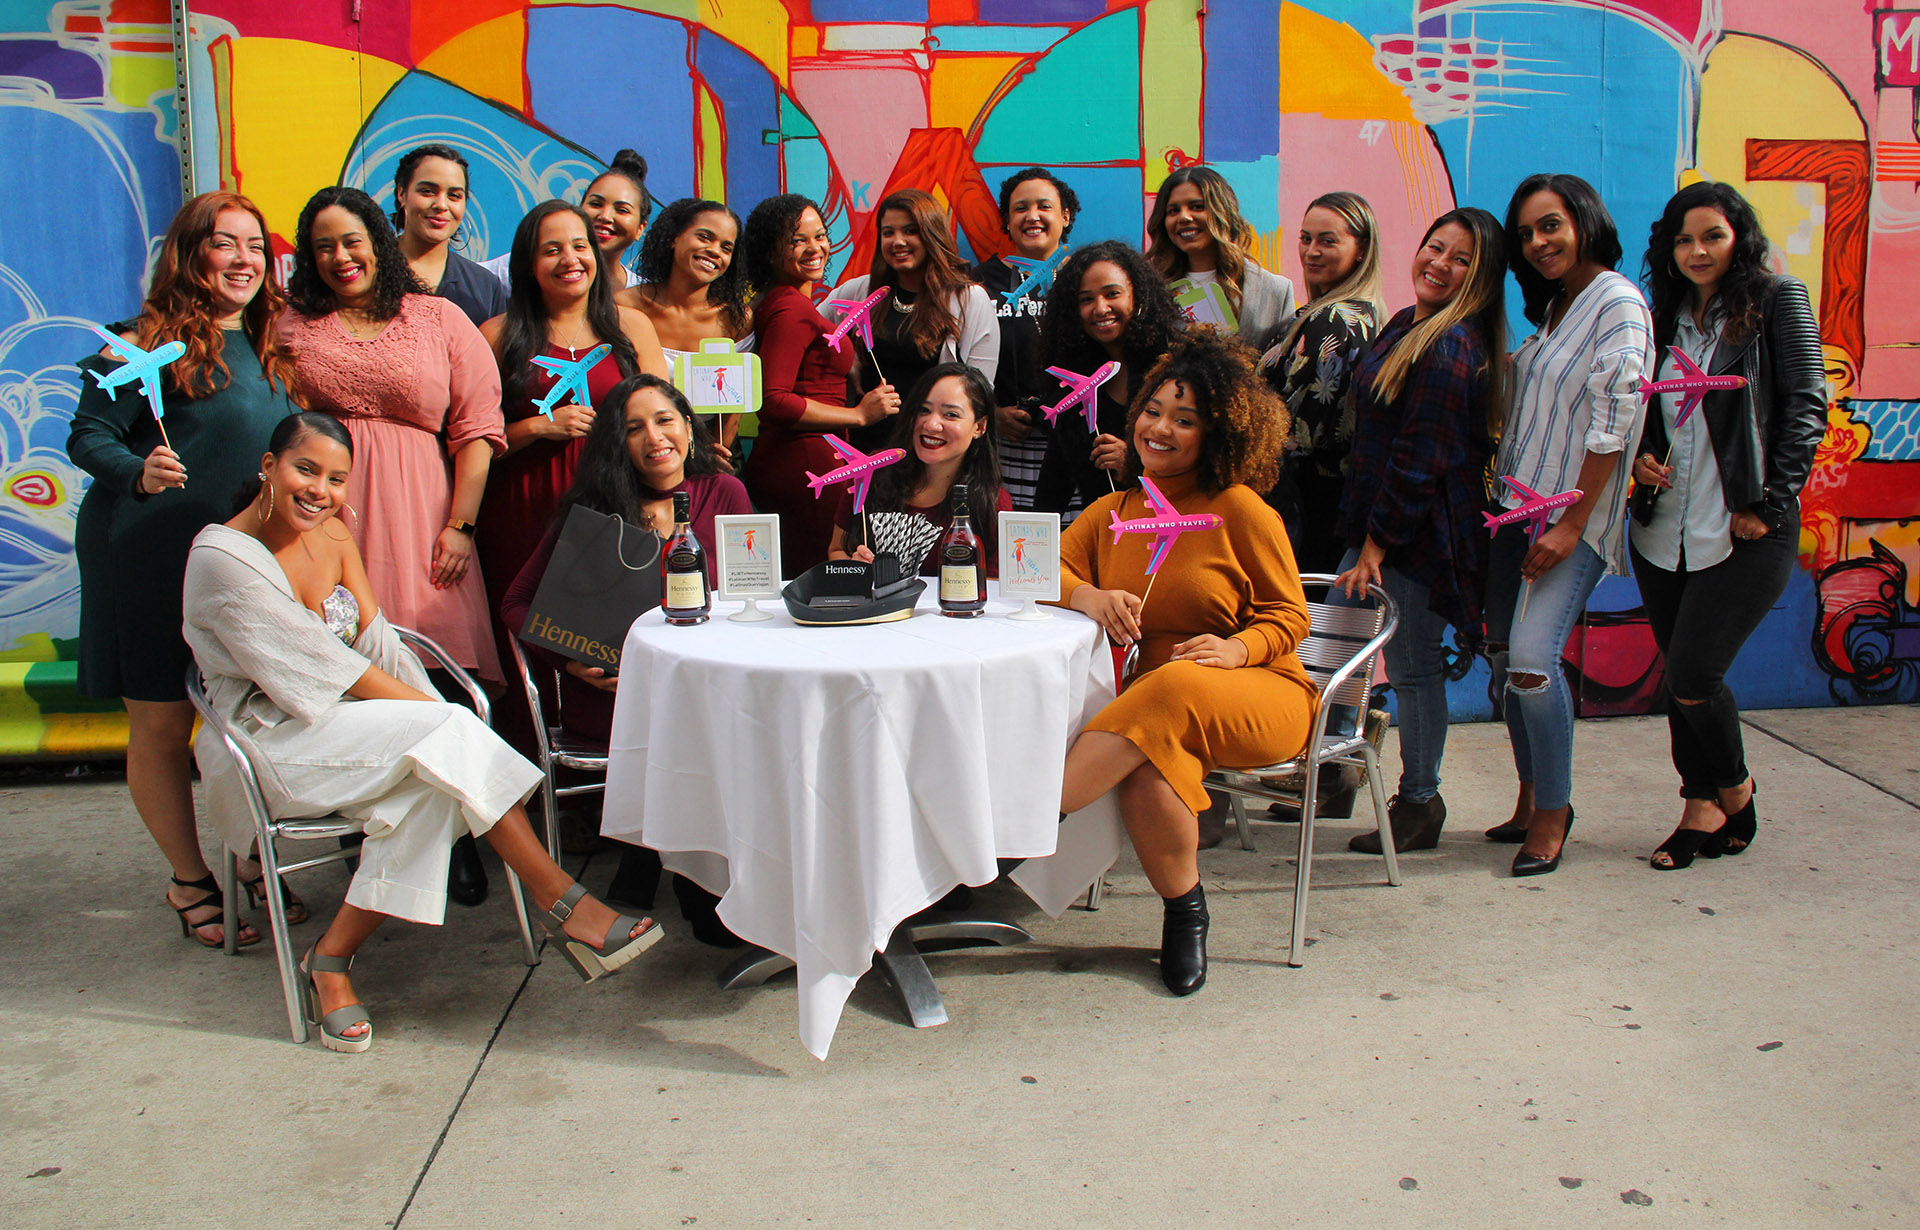 latinas-who-travel-x-hennessy-celebrating-hispanic-heritage-month-in-new-jersey